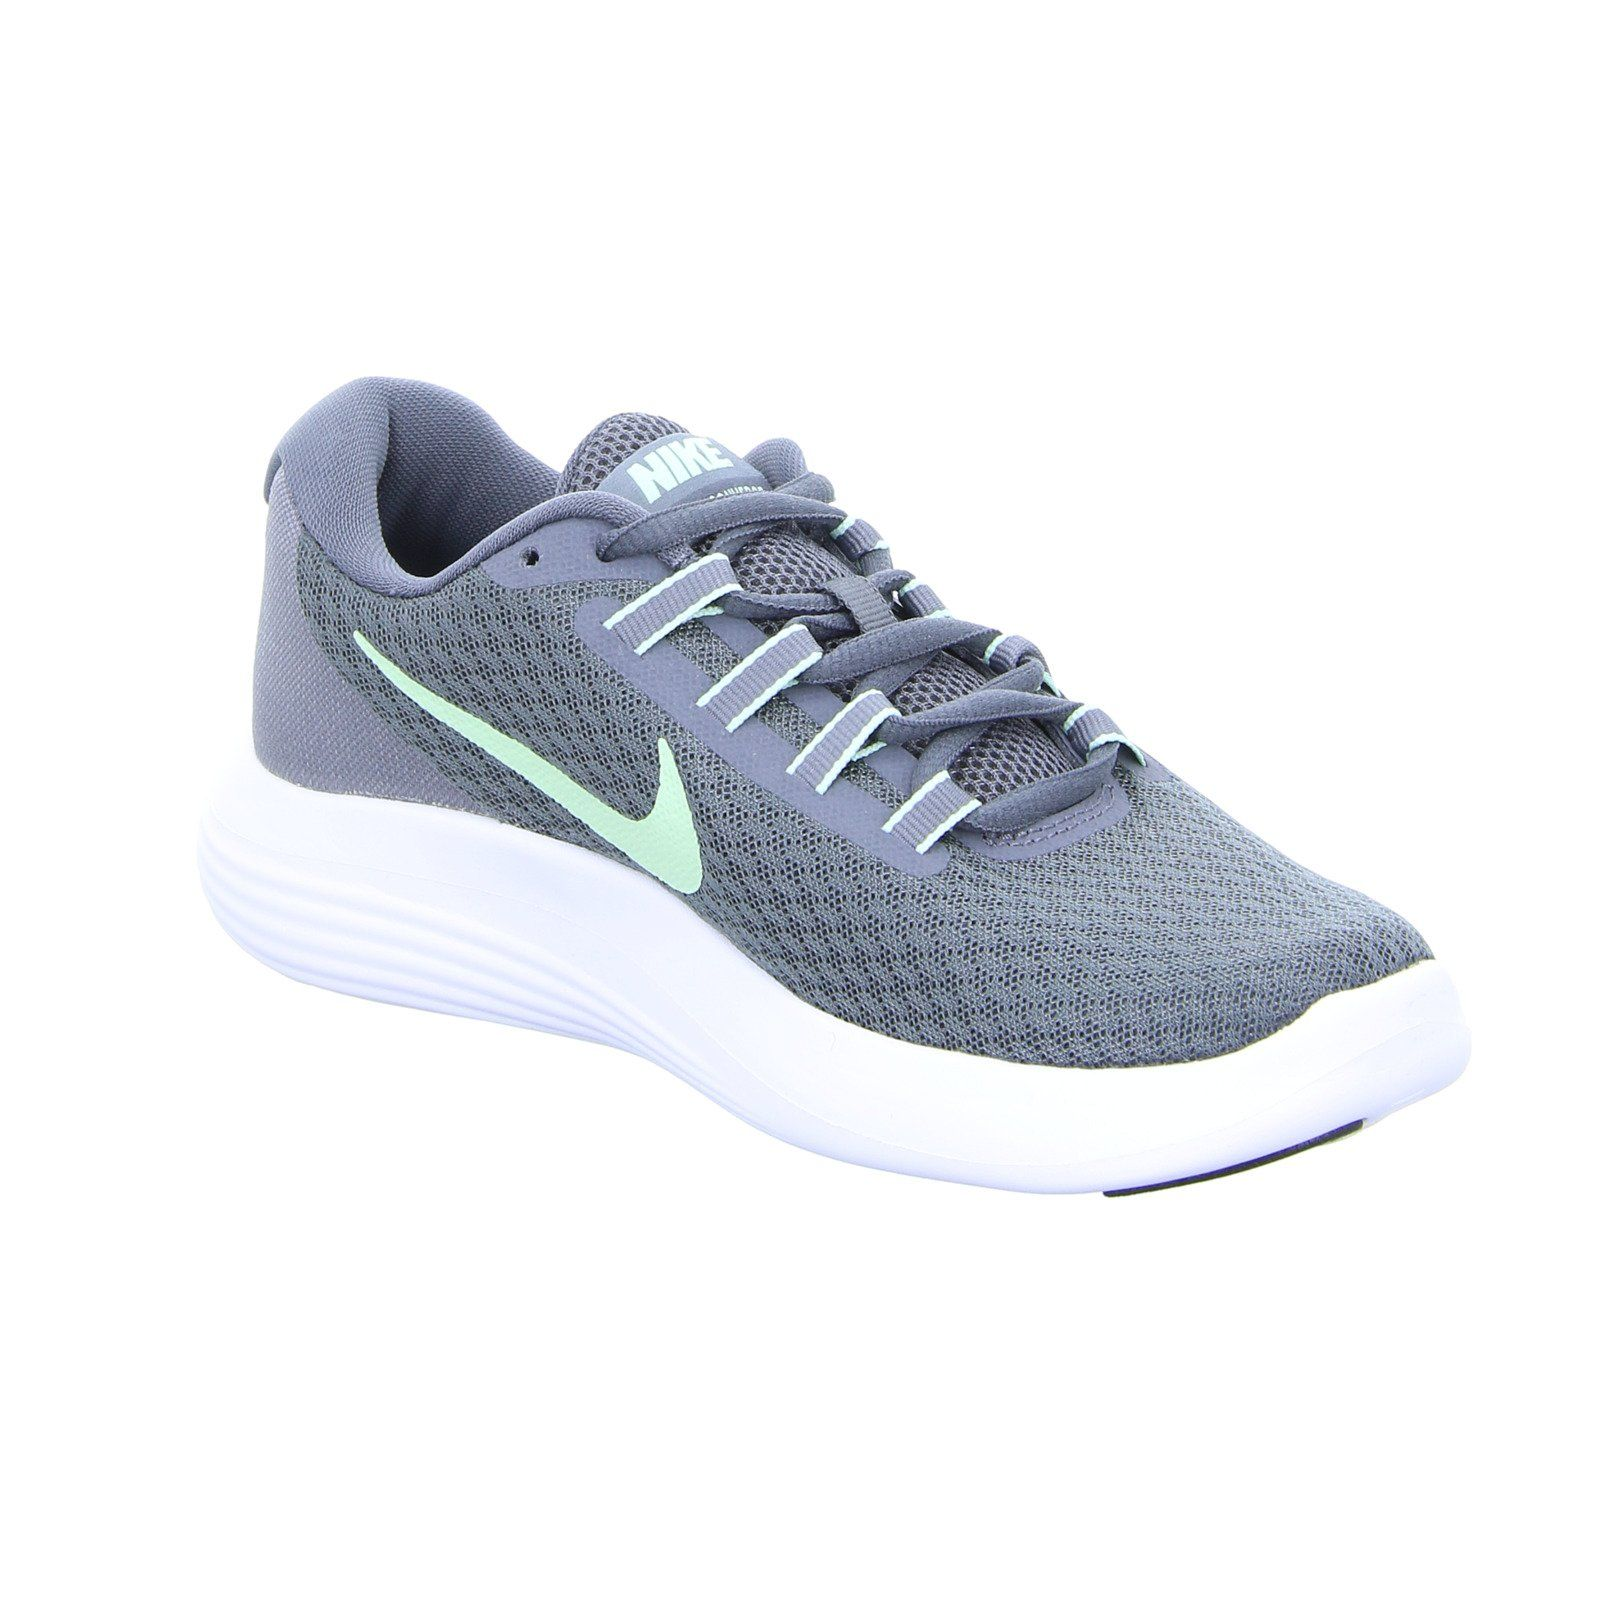 Nike Lunarconverge Dark Grey Athletic Shoes Womens 8 5 To View Further For This Item Visit The Image L Best Running Shoes Running Shoes Running Shoes Nike